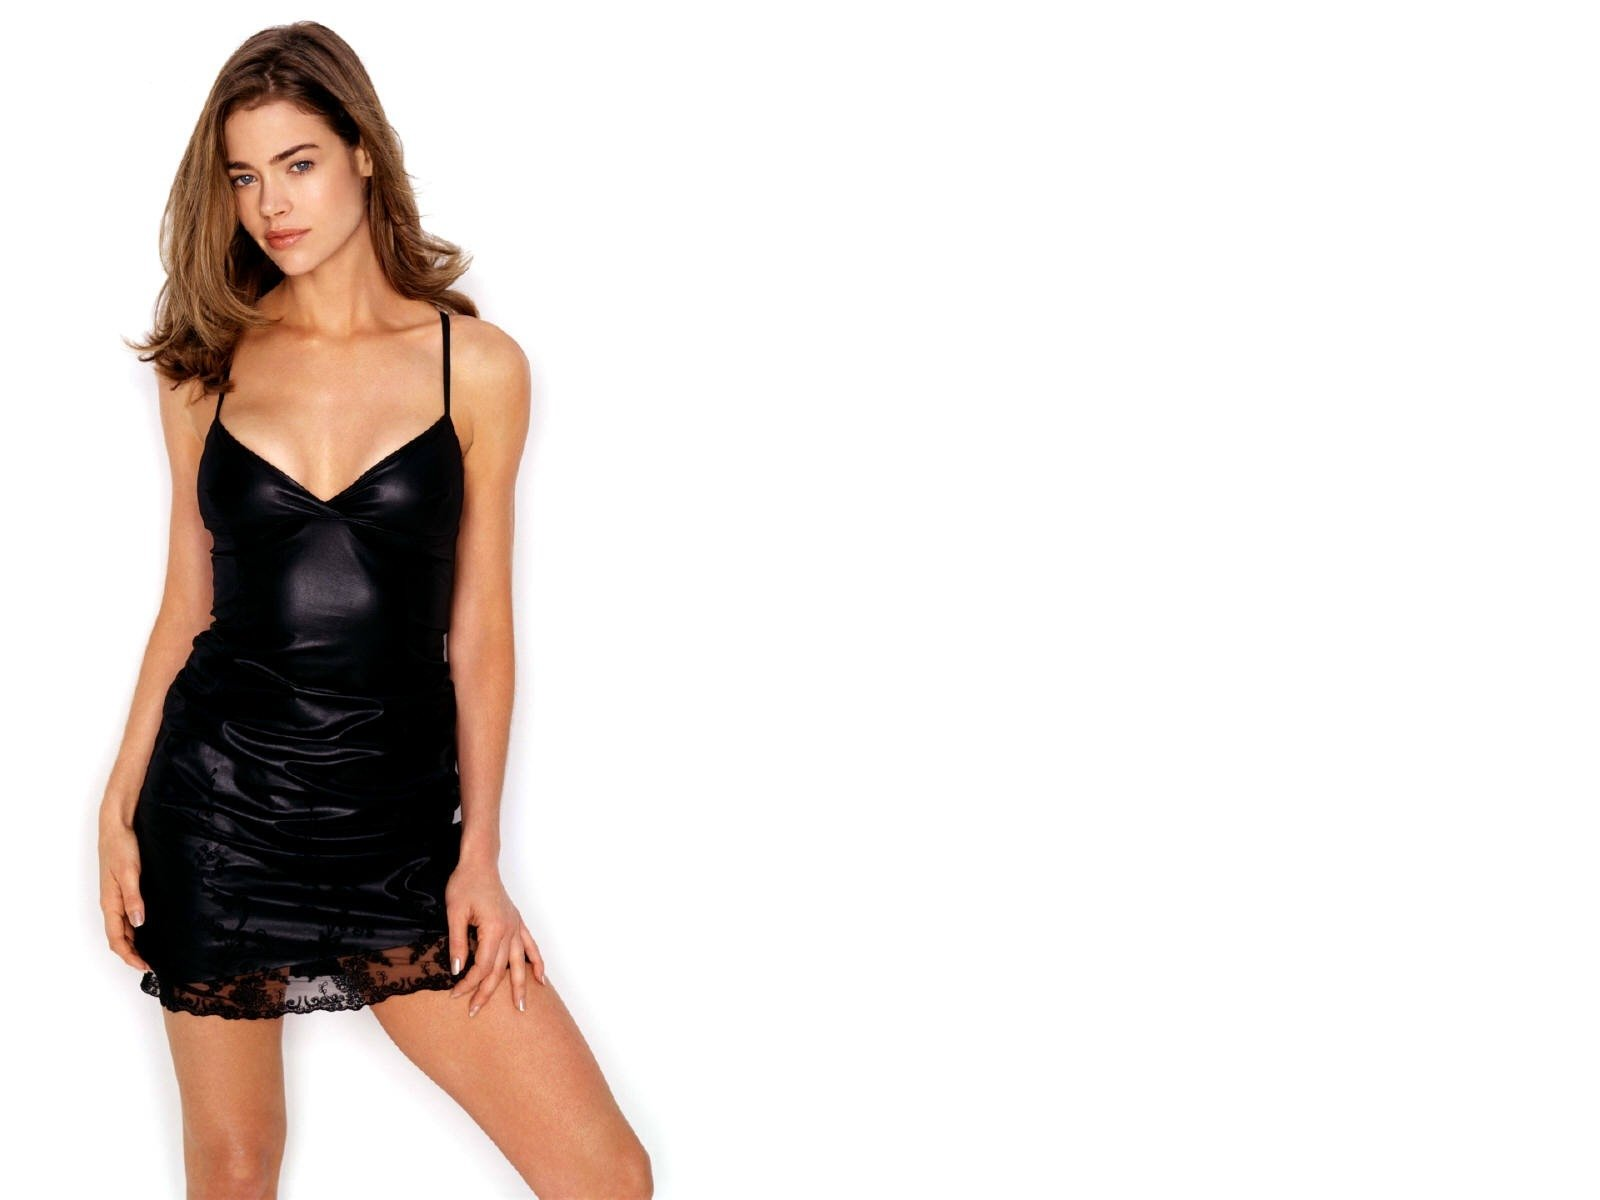 Wallpaper di Denise Richards - 59